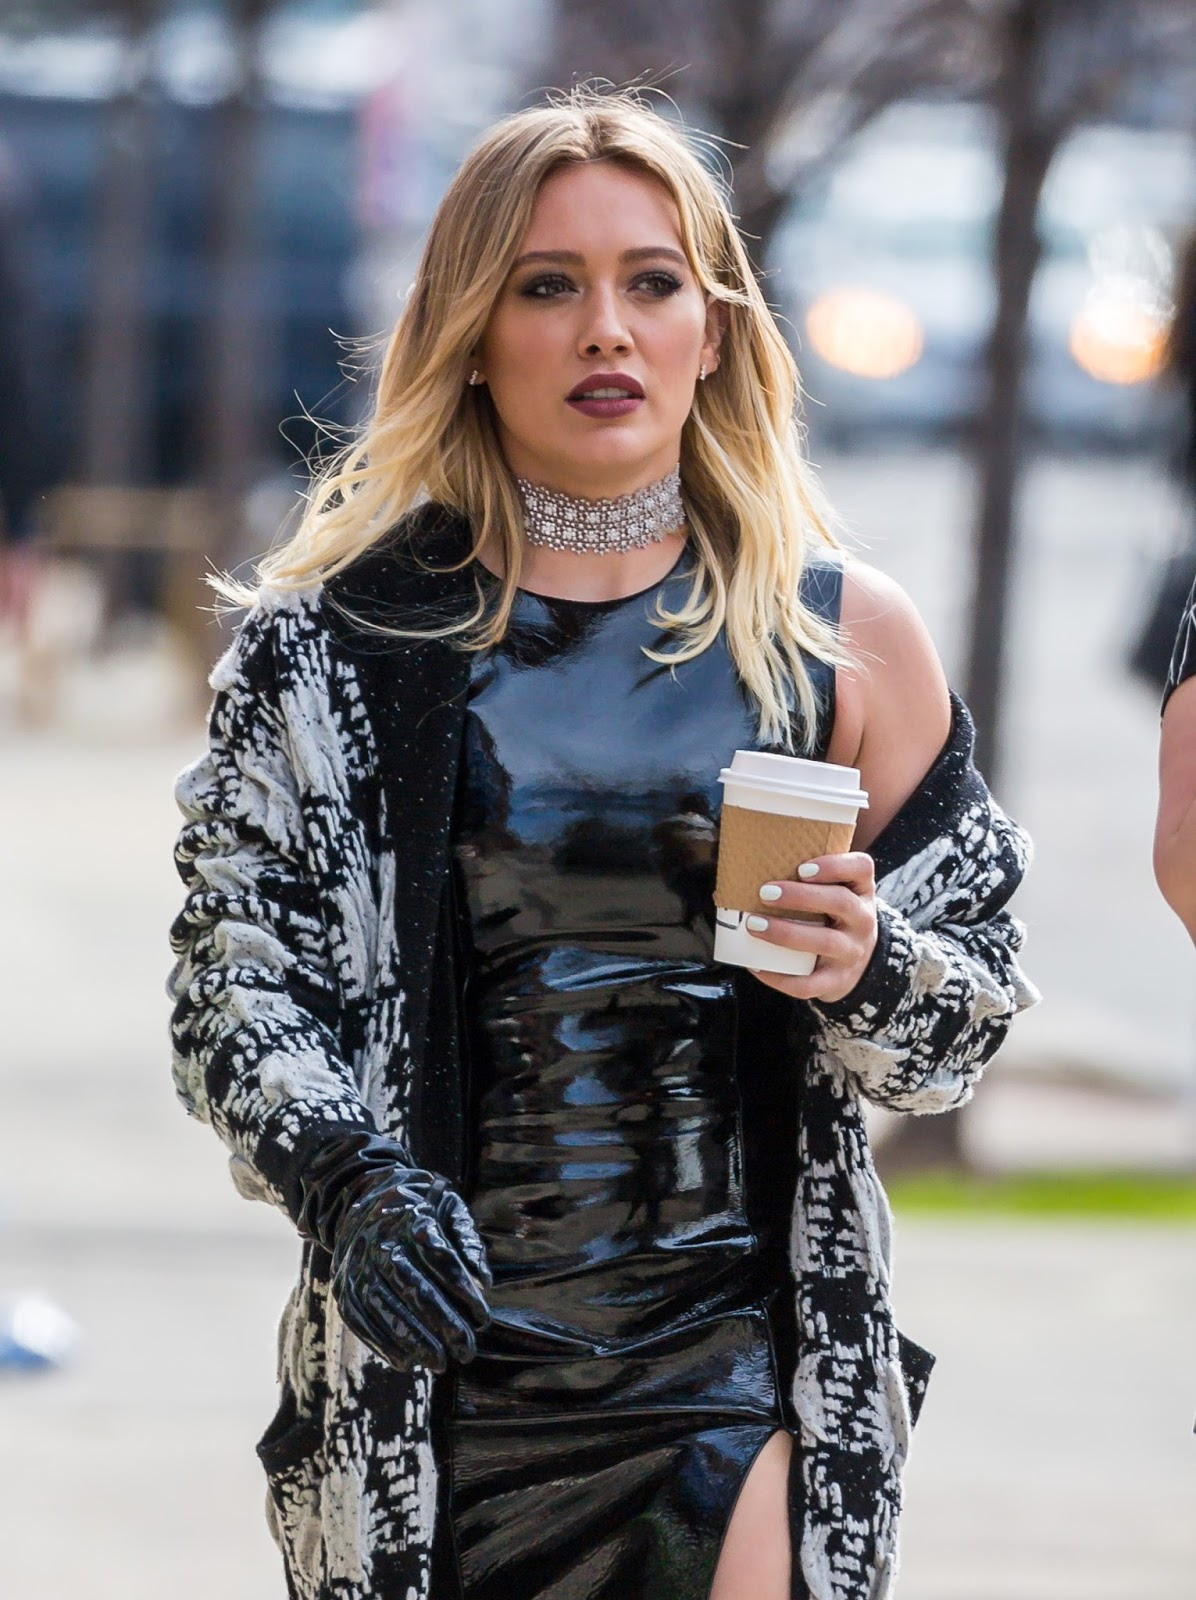 Lovely Ladies in Leather: Hilary Duff in a patent leather ... Hilary Duff